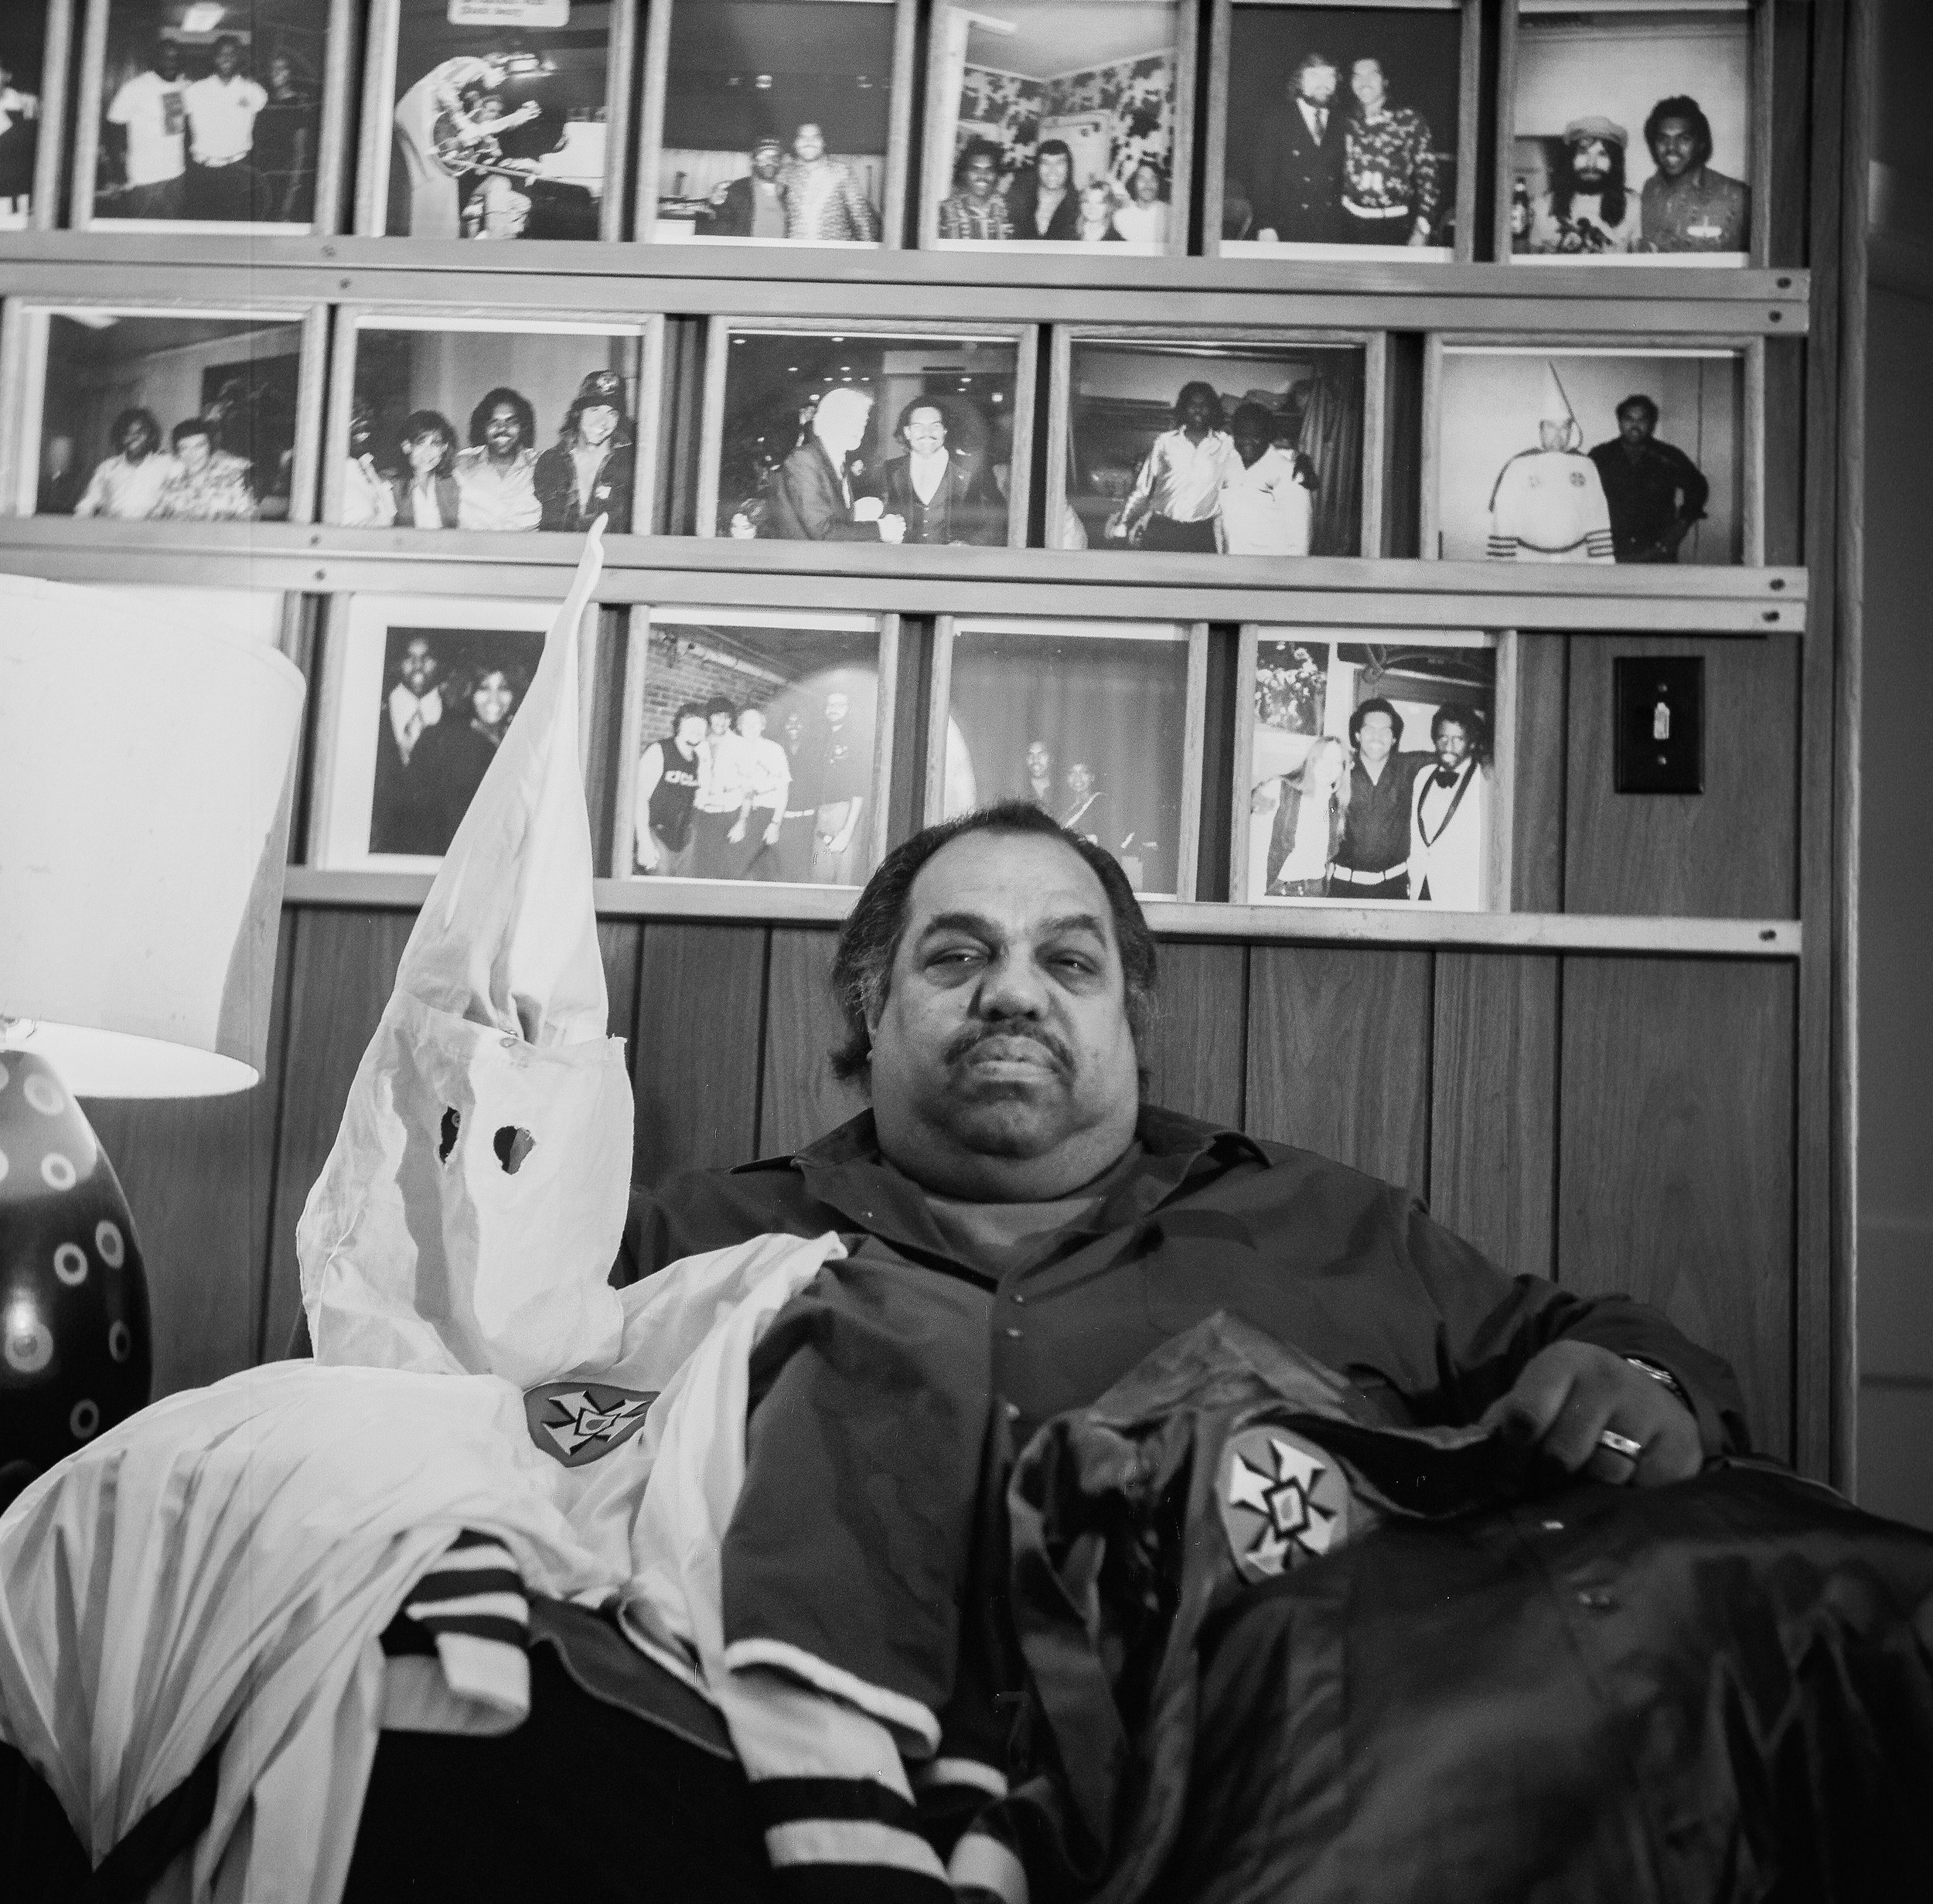 Daryl Davis poses with his robes